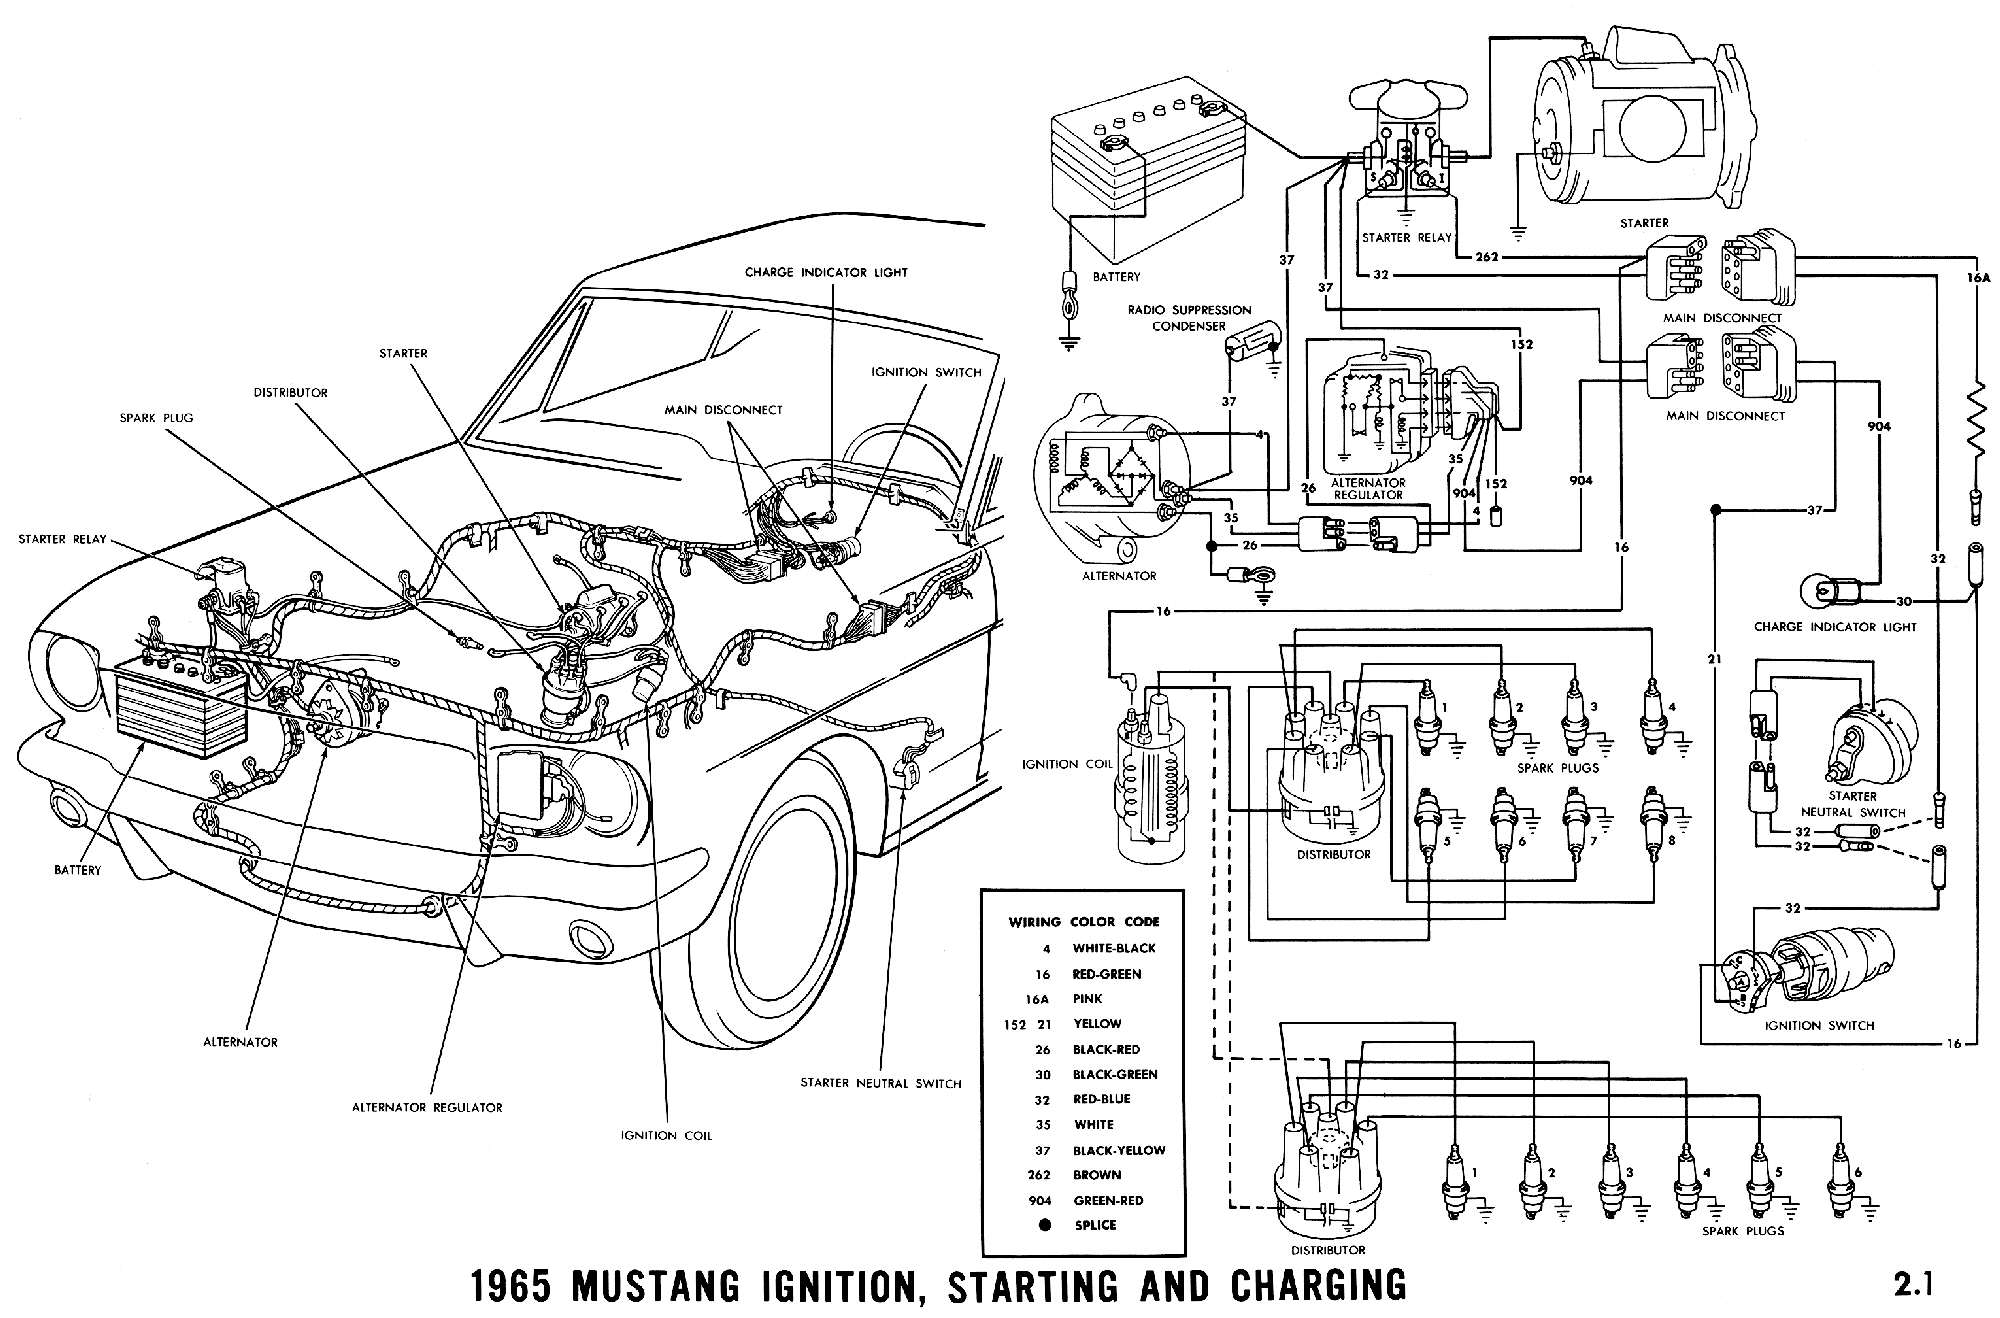 1965 mustang wiring diagrams - average joe restoration stereo amplifier wiring diagram 1995 ford mustang downloadable wiring diagram 1966 ford mustang #11